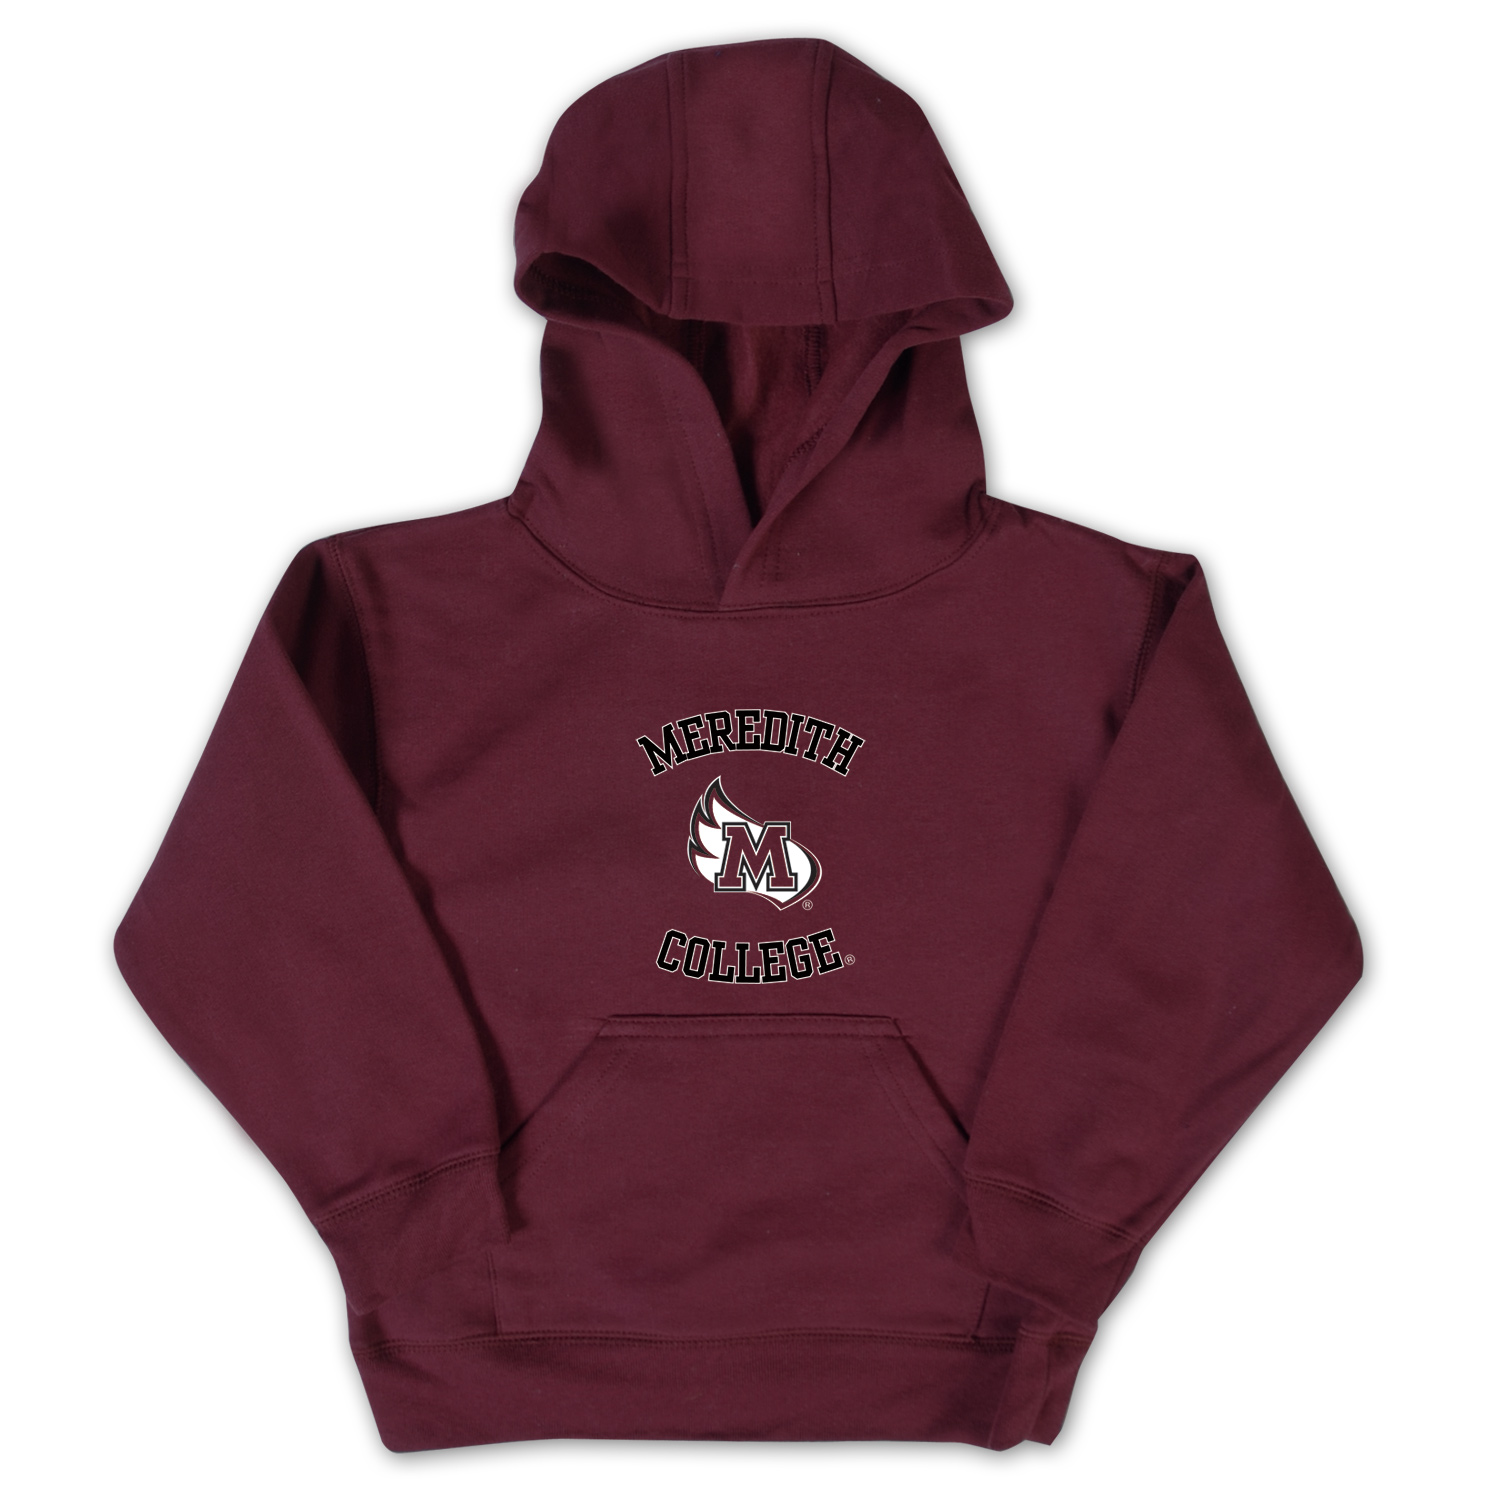 Image for the Toddler Hood Maroon Meredith MWing College College Kids product